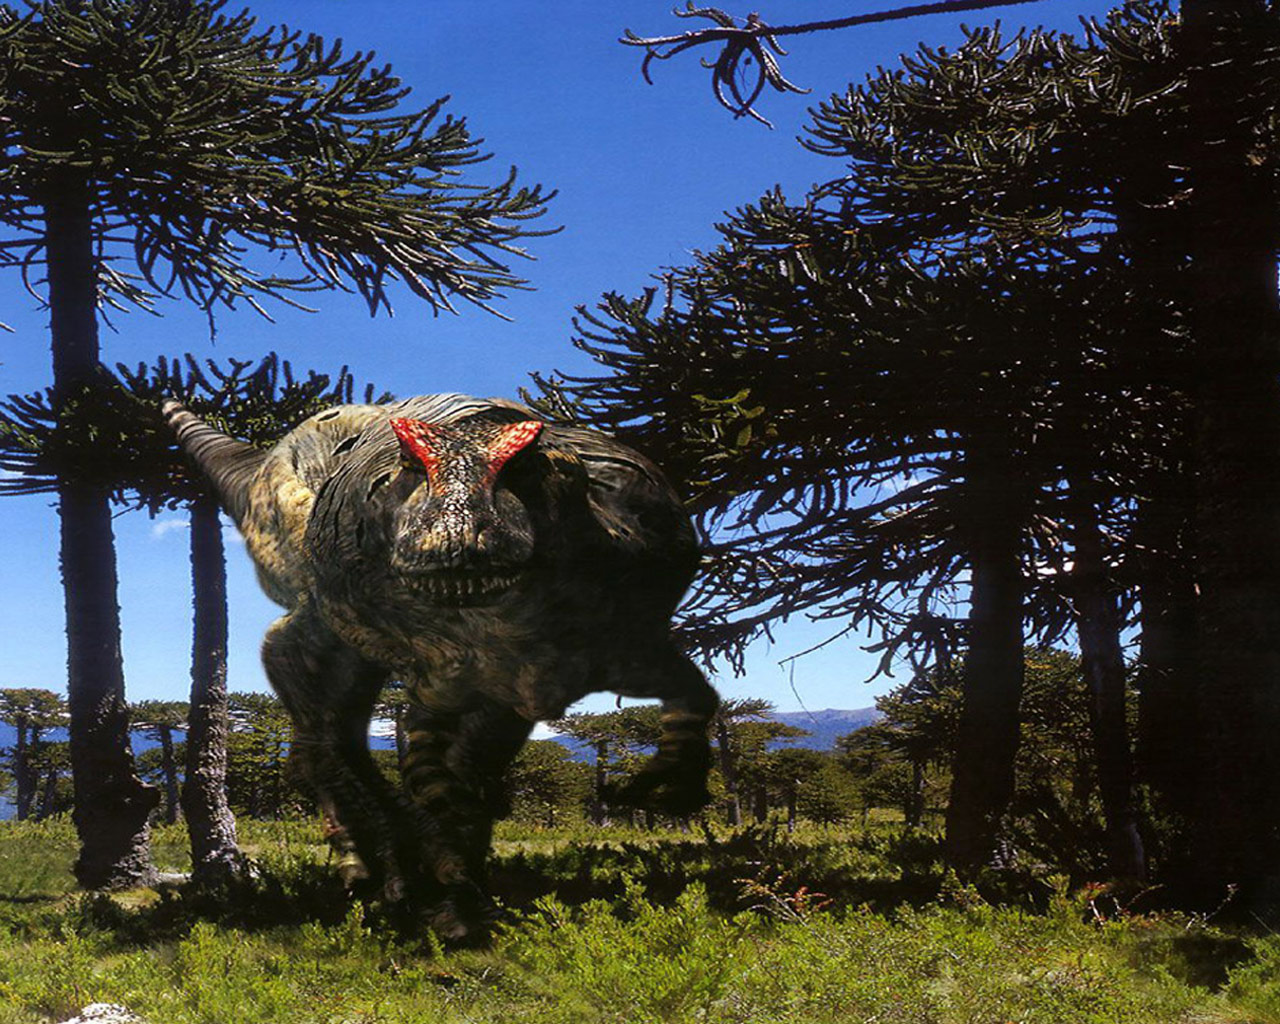 widescreen dinosaur at forest images